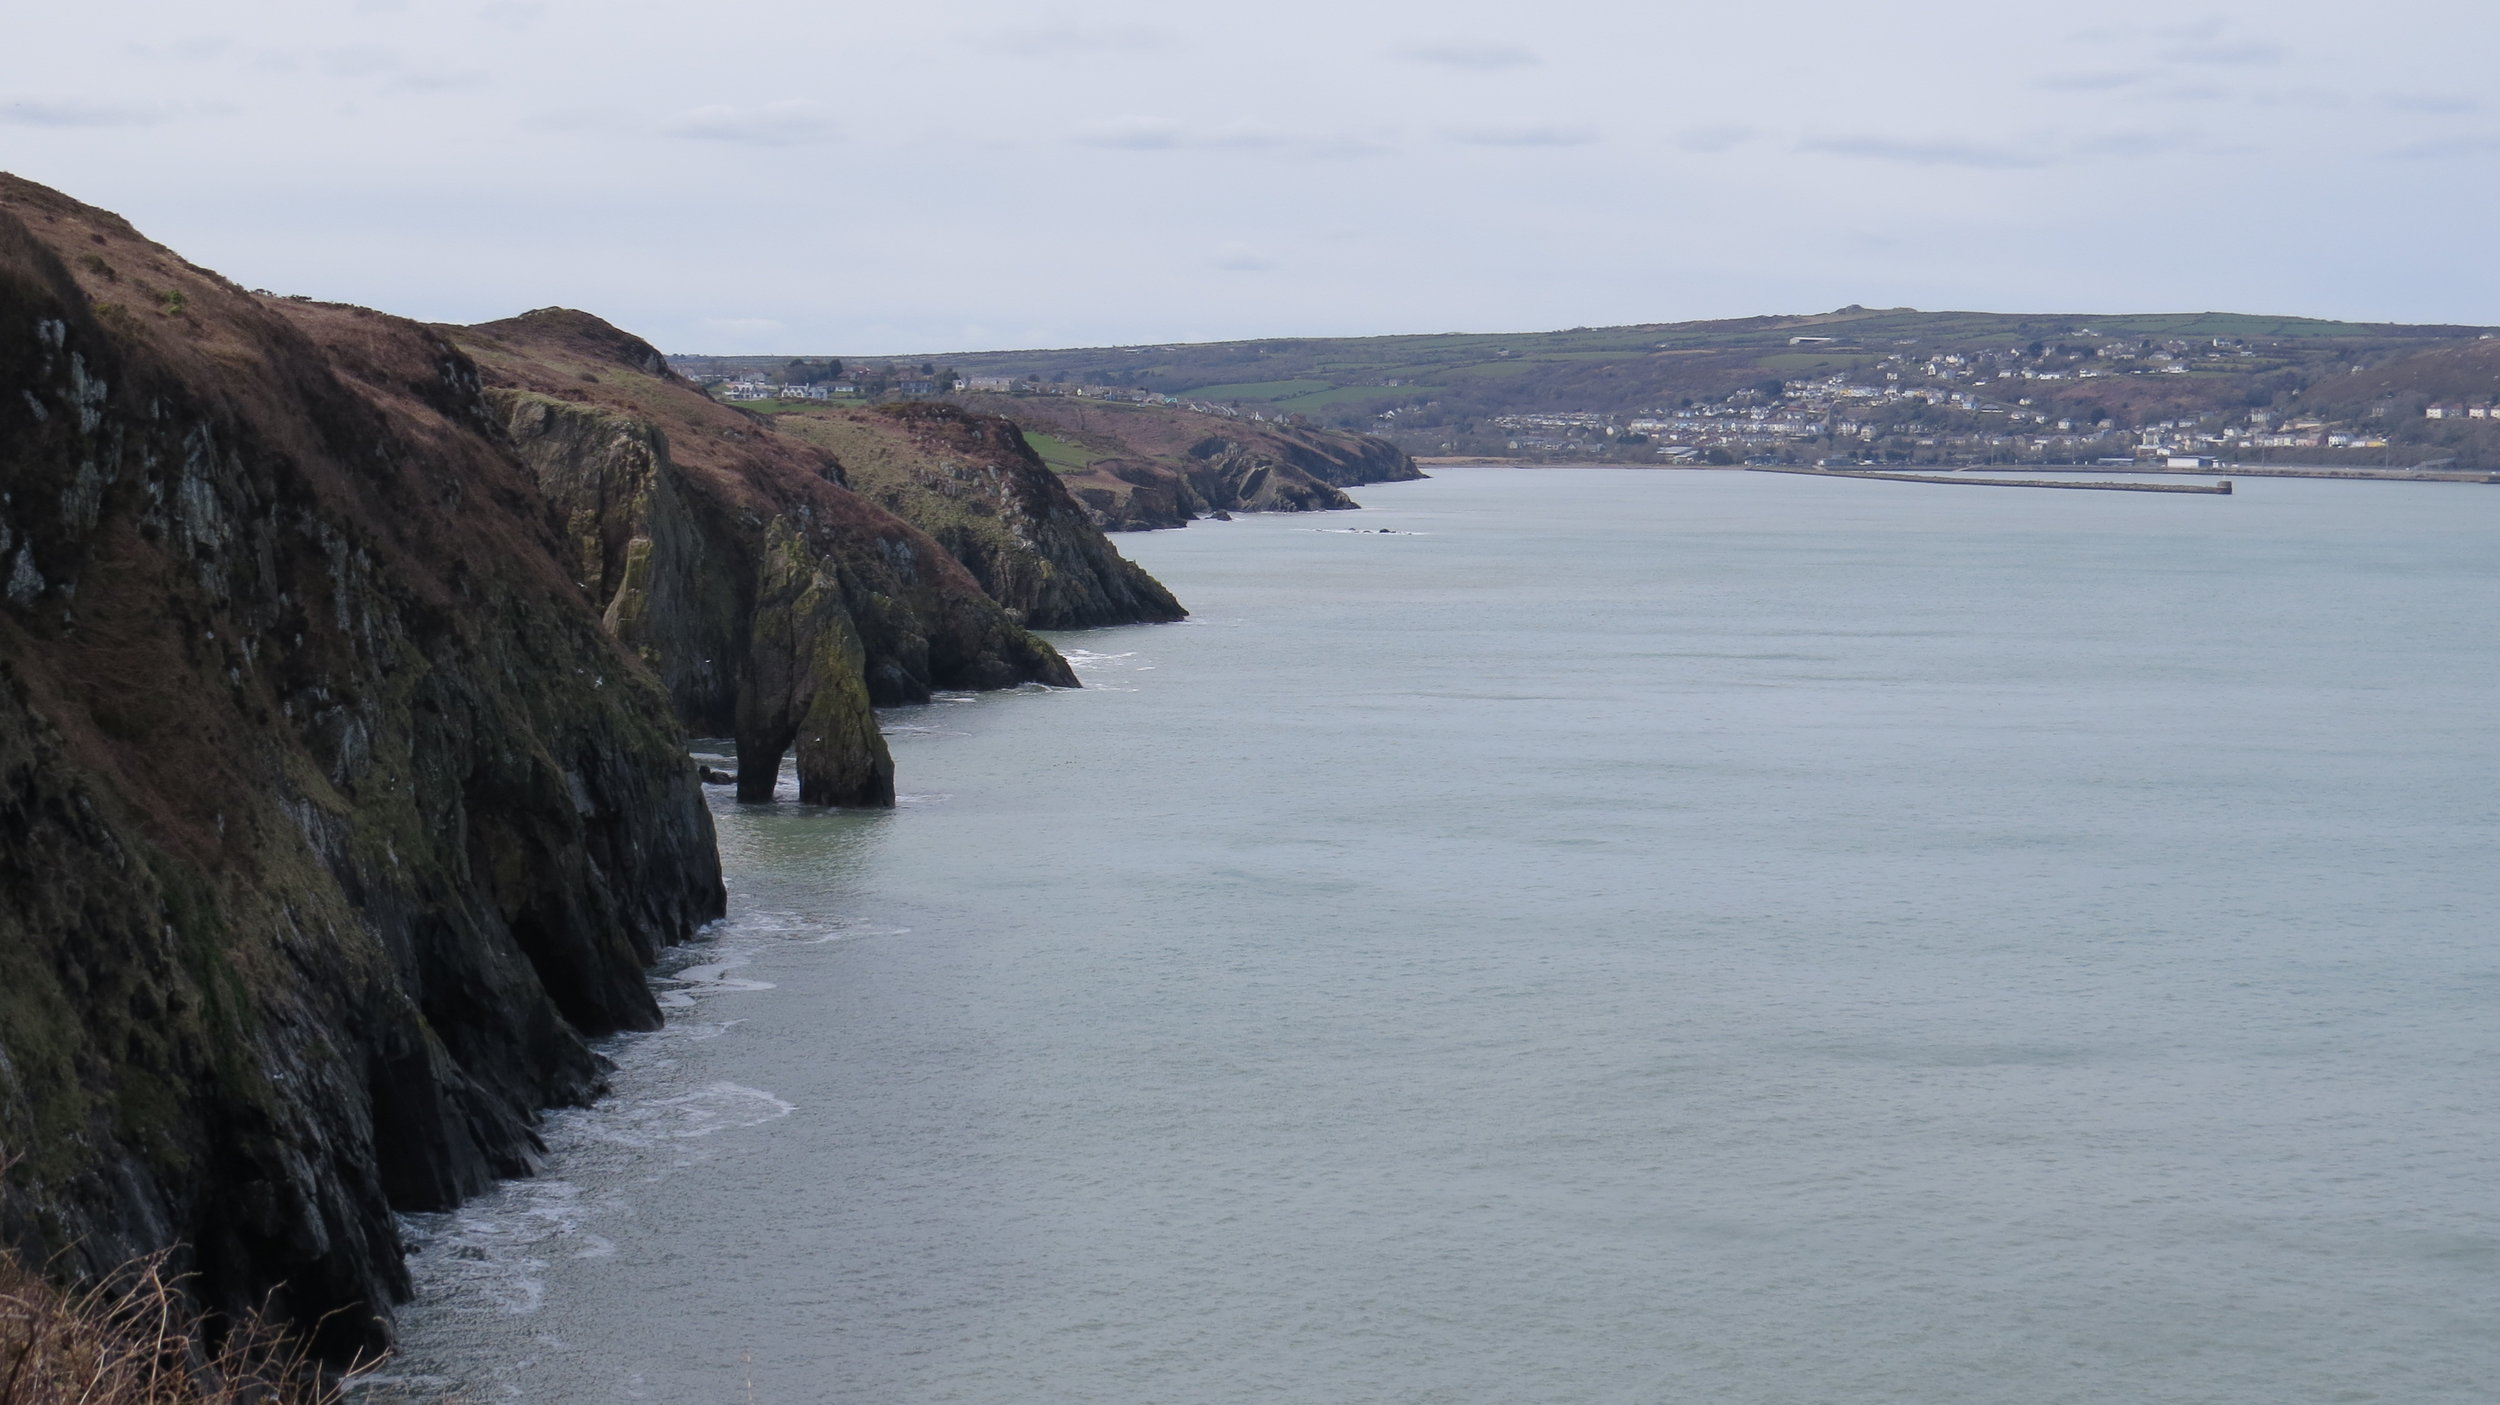 Looking back to Fishguard